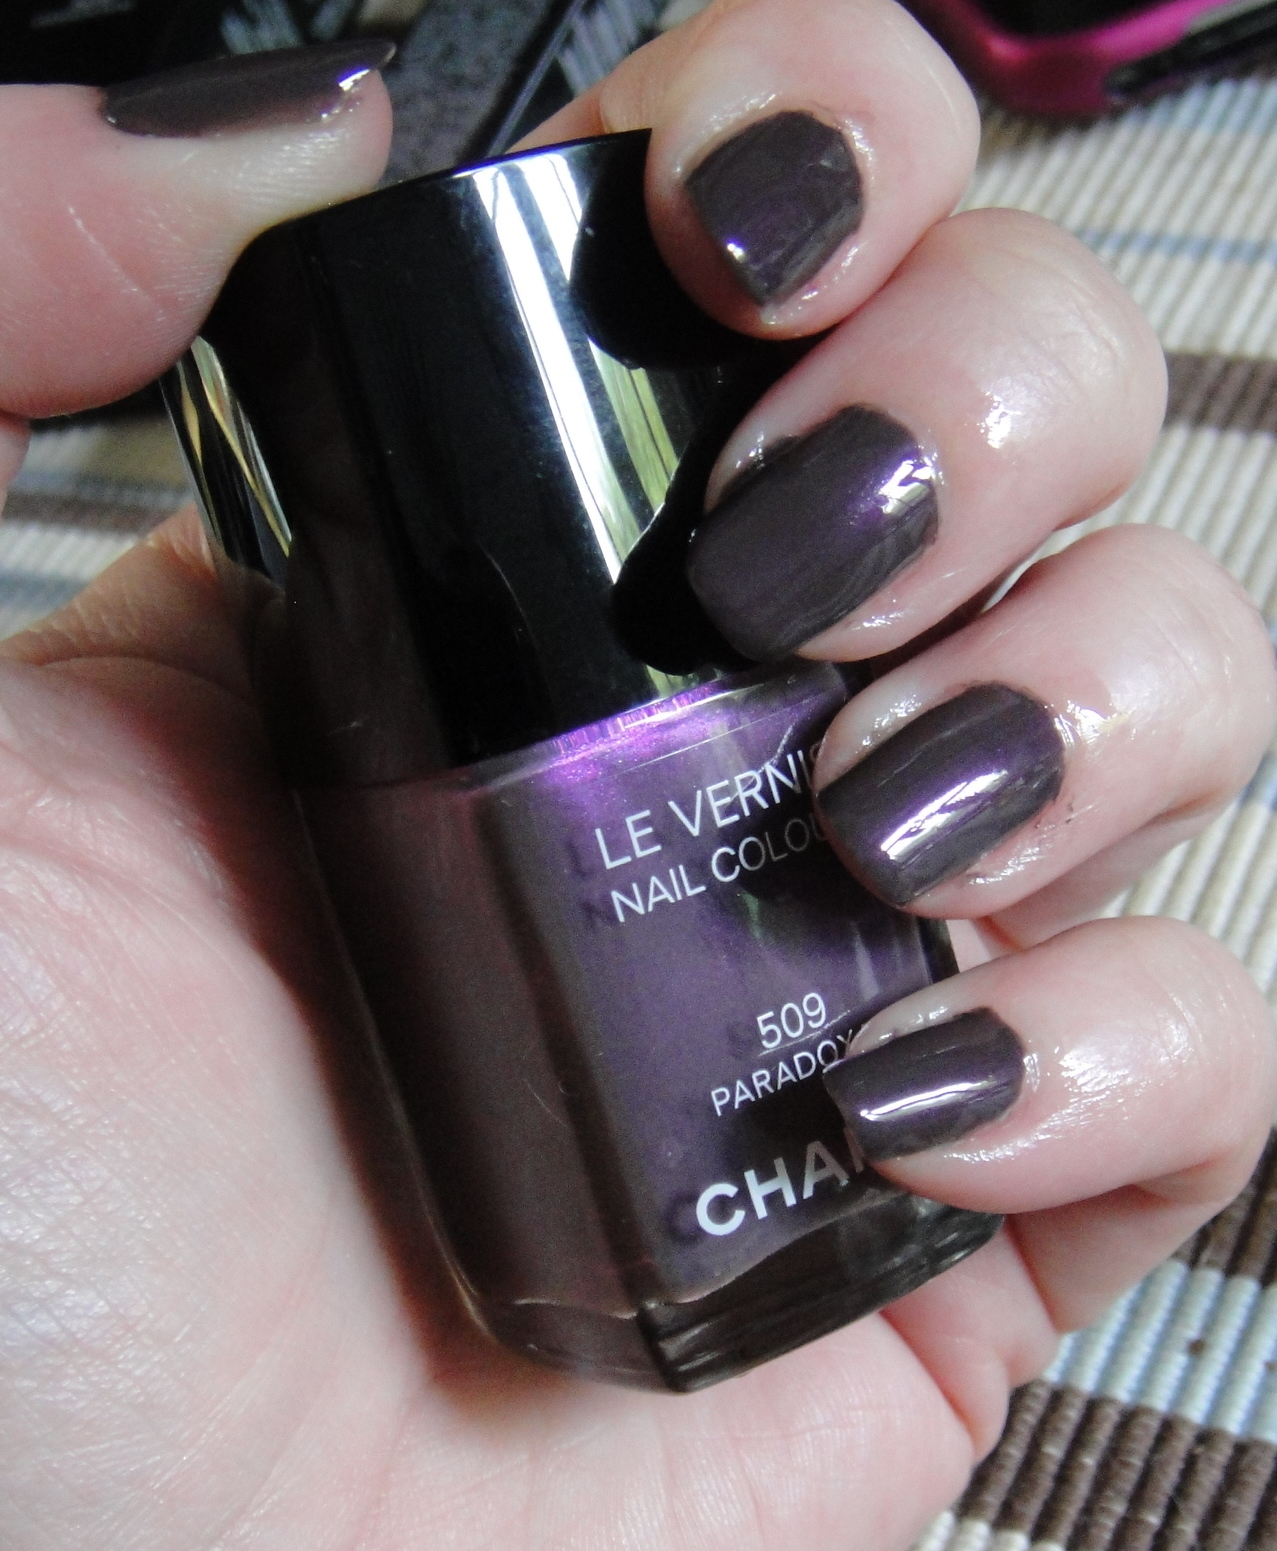 Nail of the Day: Chanel Paradoxal - Get Lippie